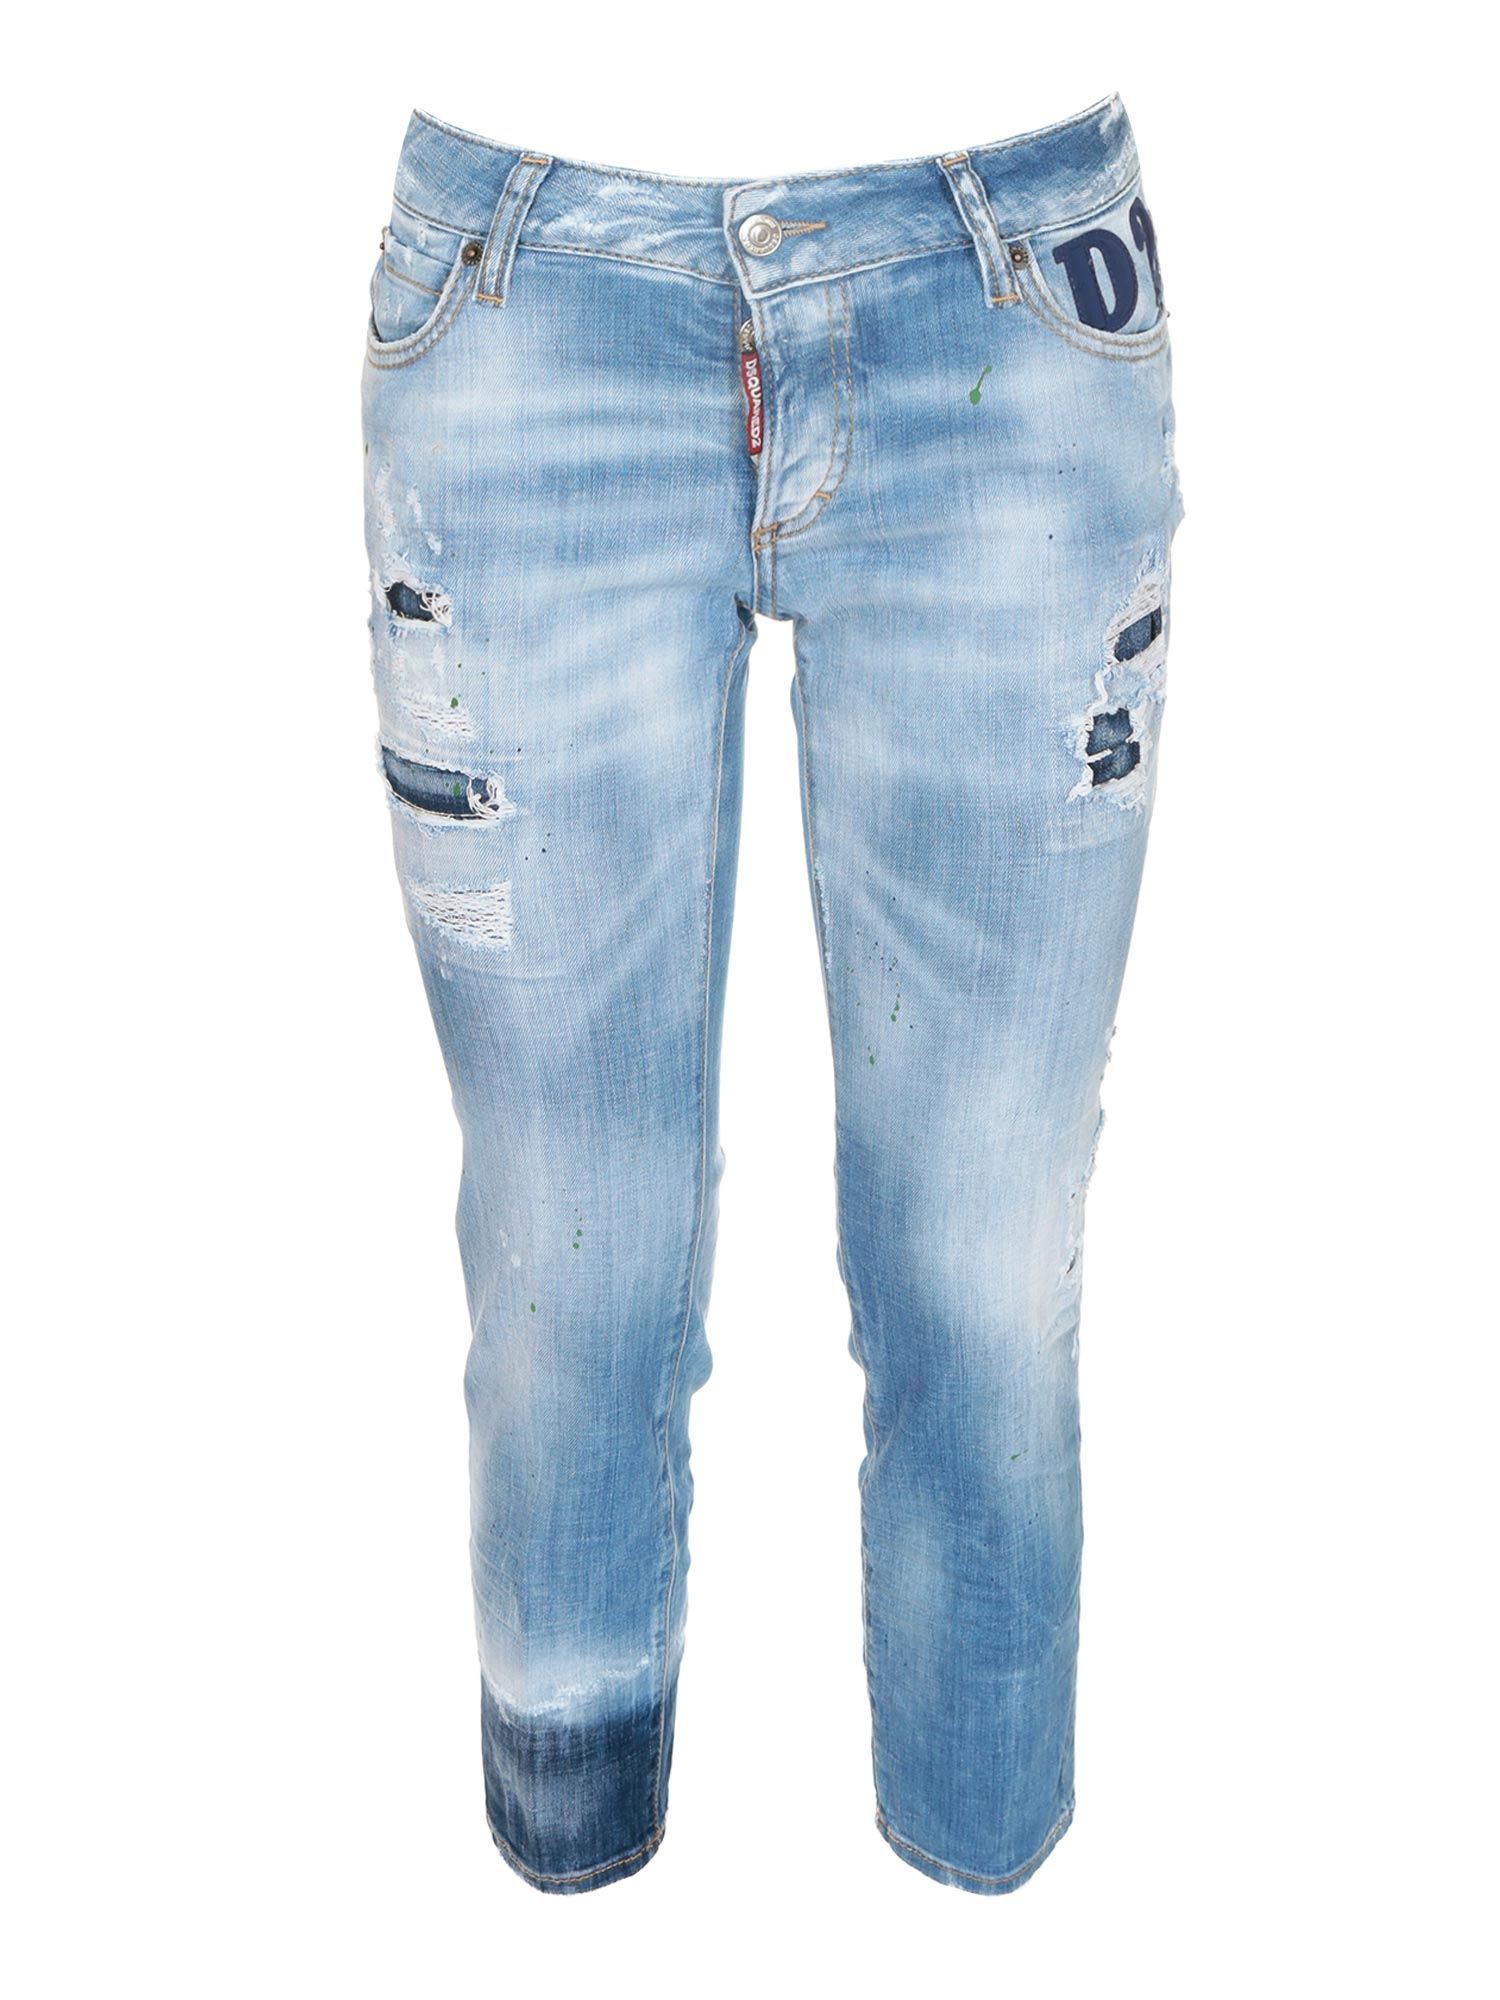 Dsquared2 JENNIFER CROPPED JEANS IN LIGHT BLUE